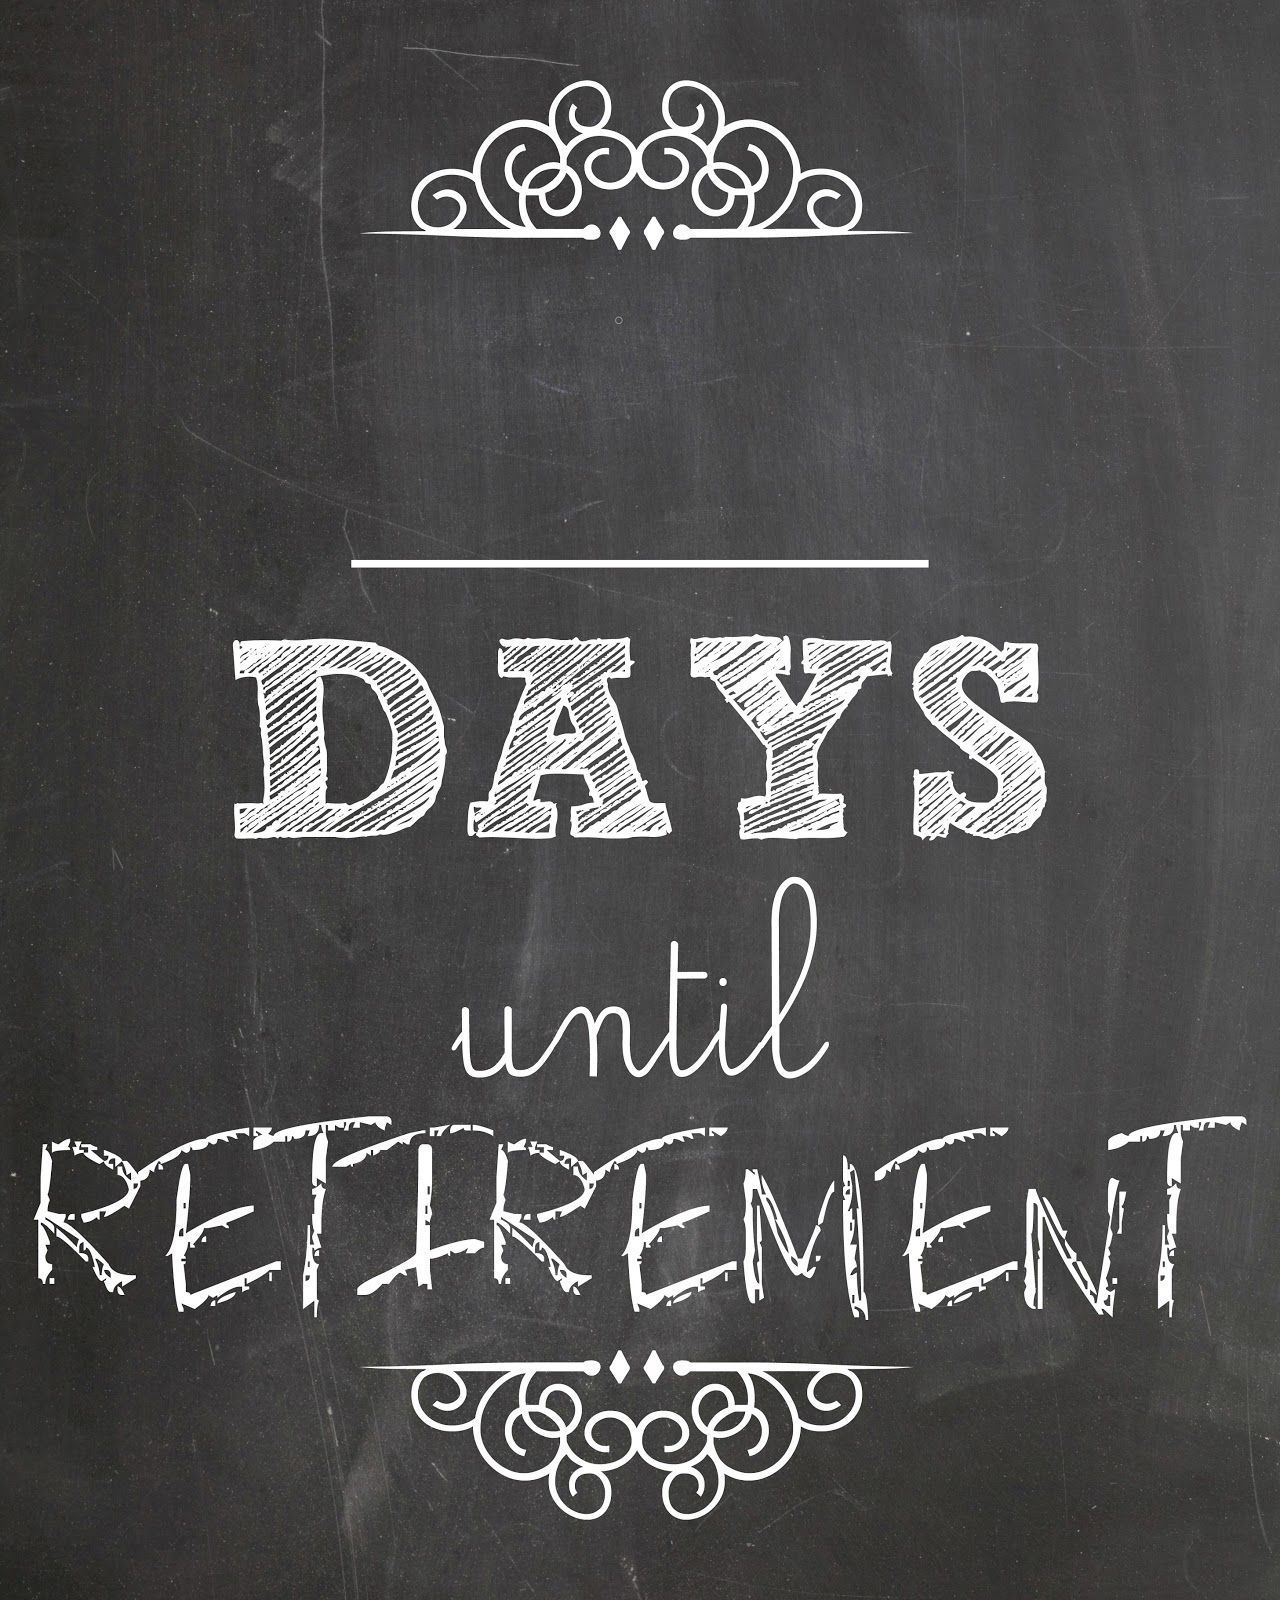 Retirement Countdown Calendar Ideas In 2020 | Retirement